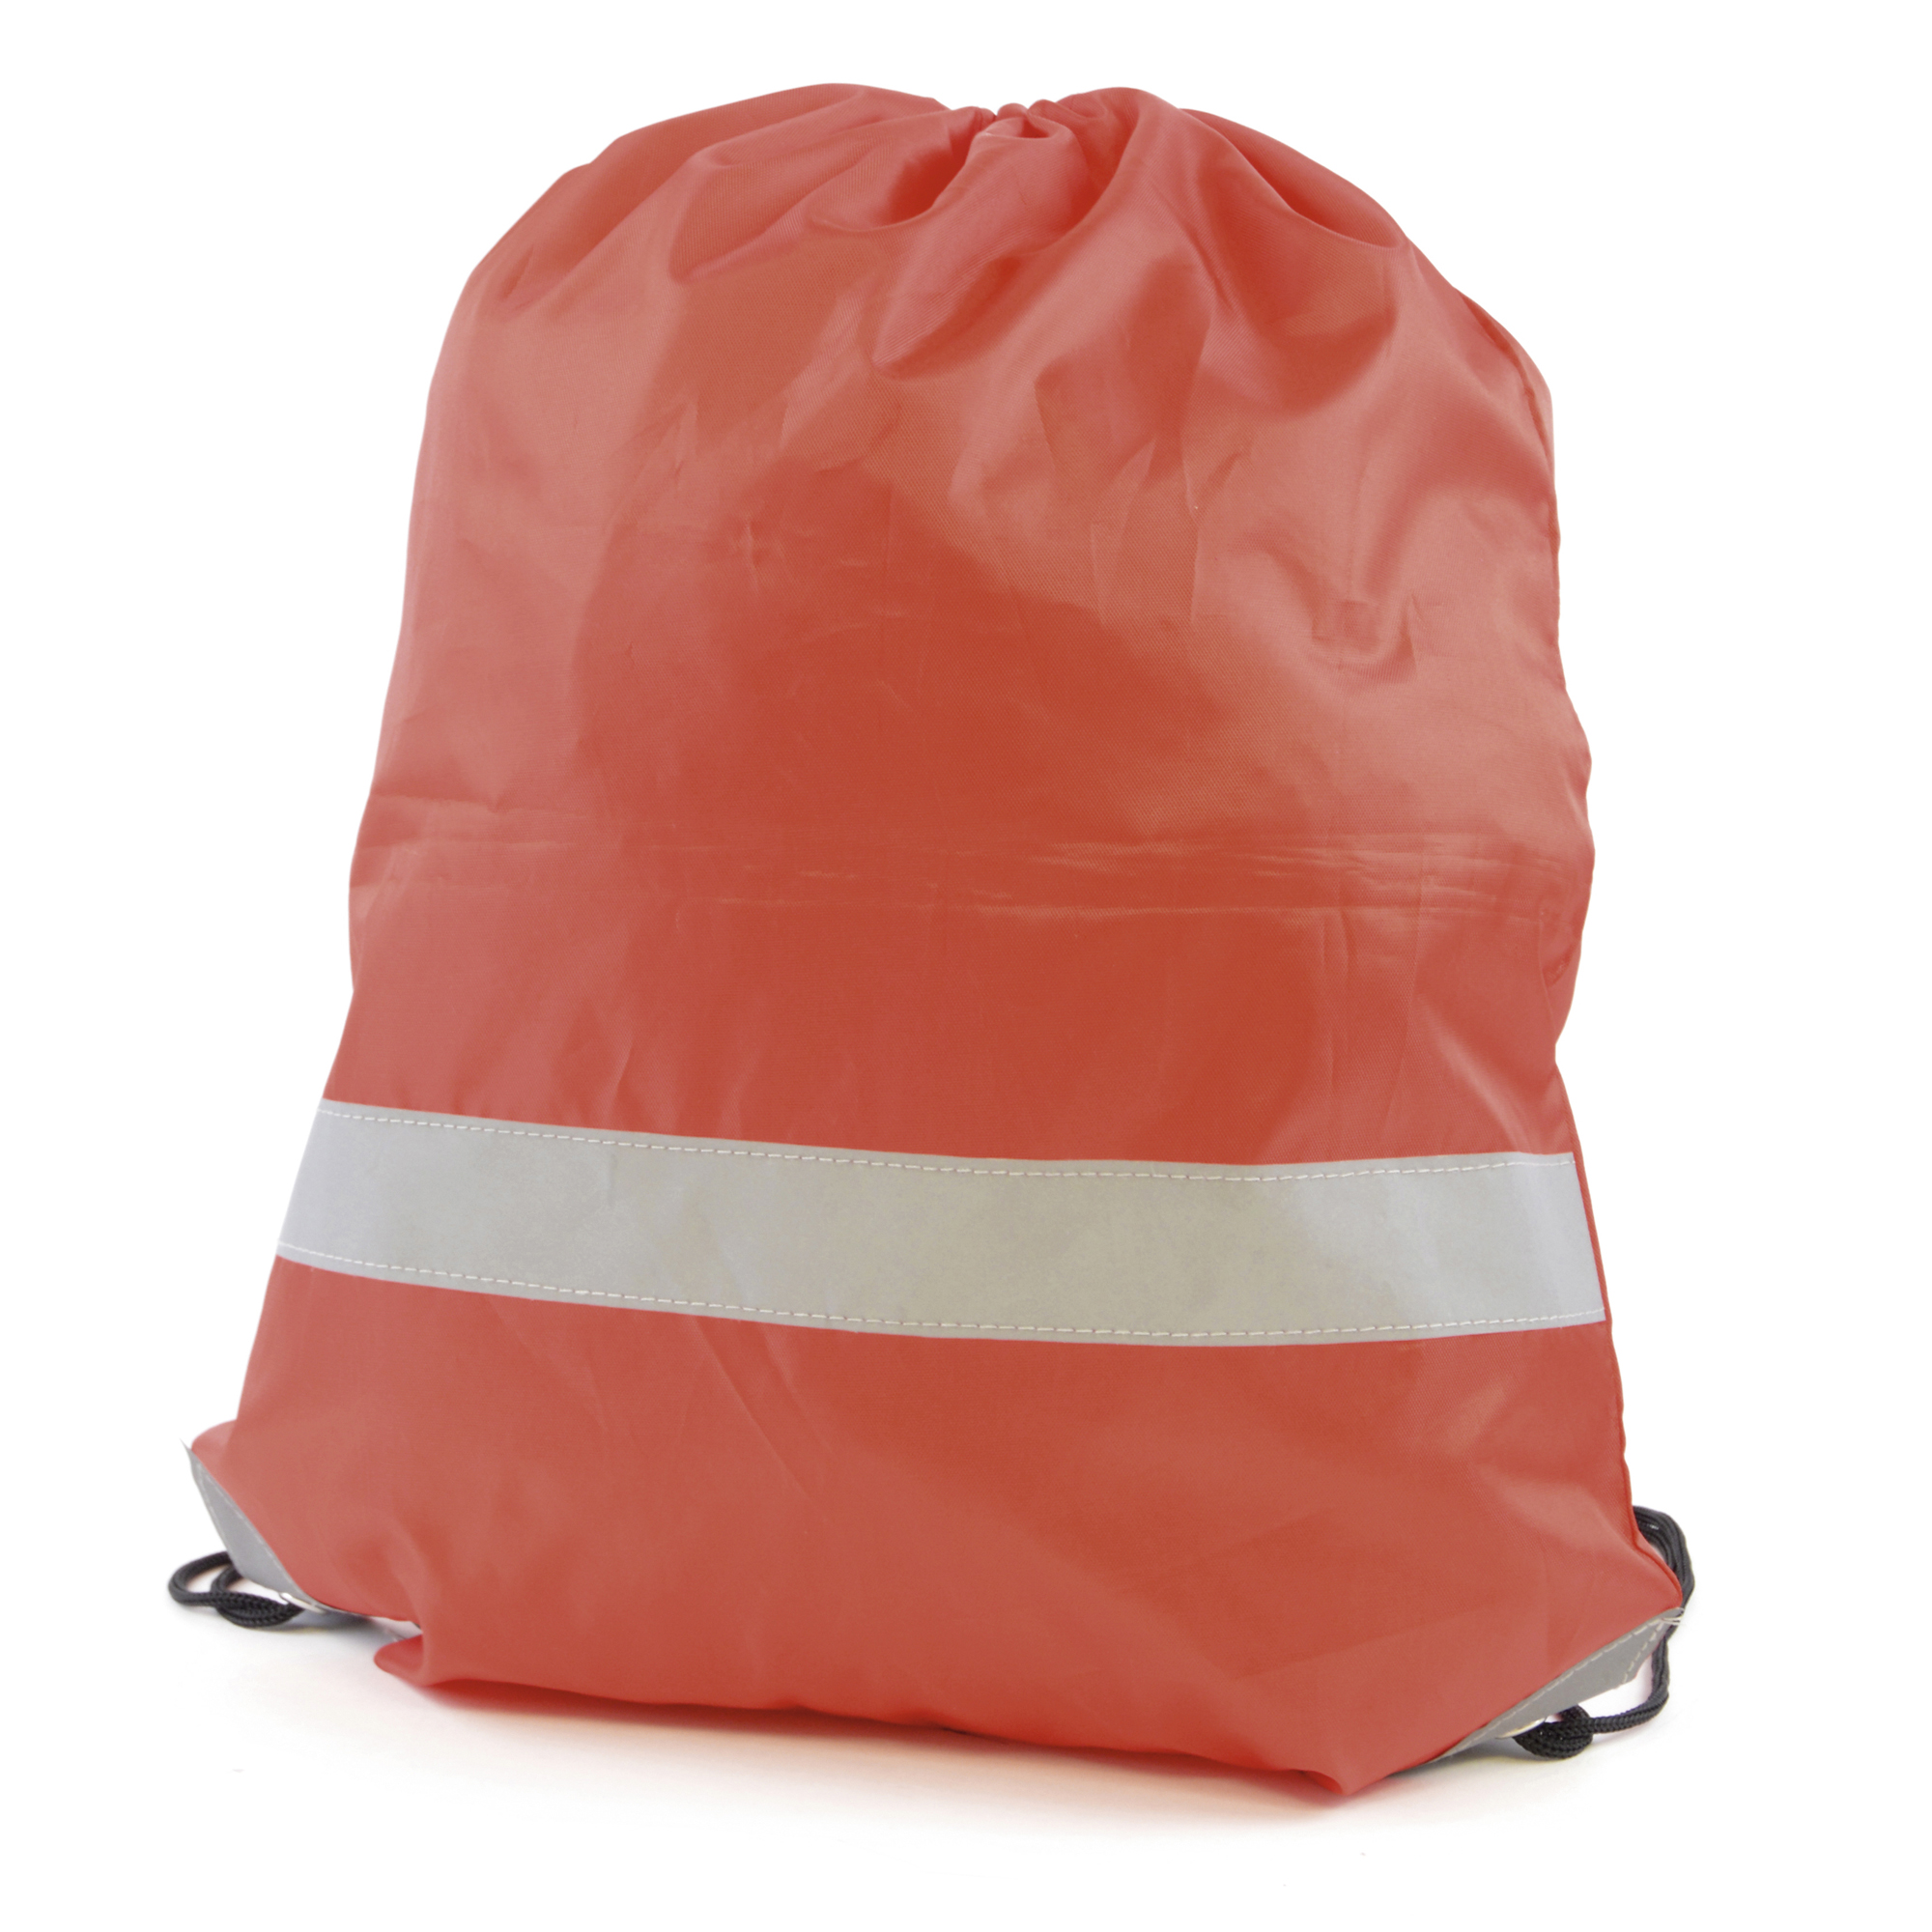 School Drawstring Book Bag Sport Gym Swim PE Dance Girls Boys Kids Backpack  Reflective Red. About this product. Picture 1 of 2  Picture 2 of 2 6a1222c2c7c2c